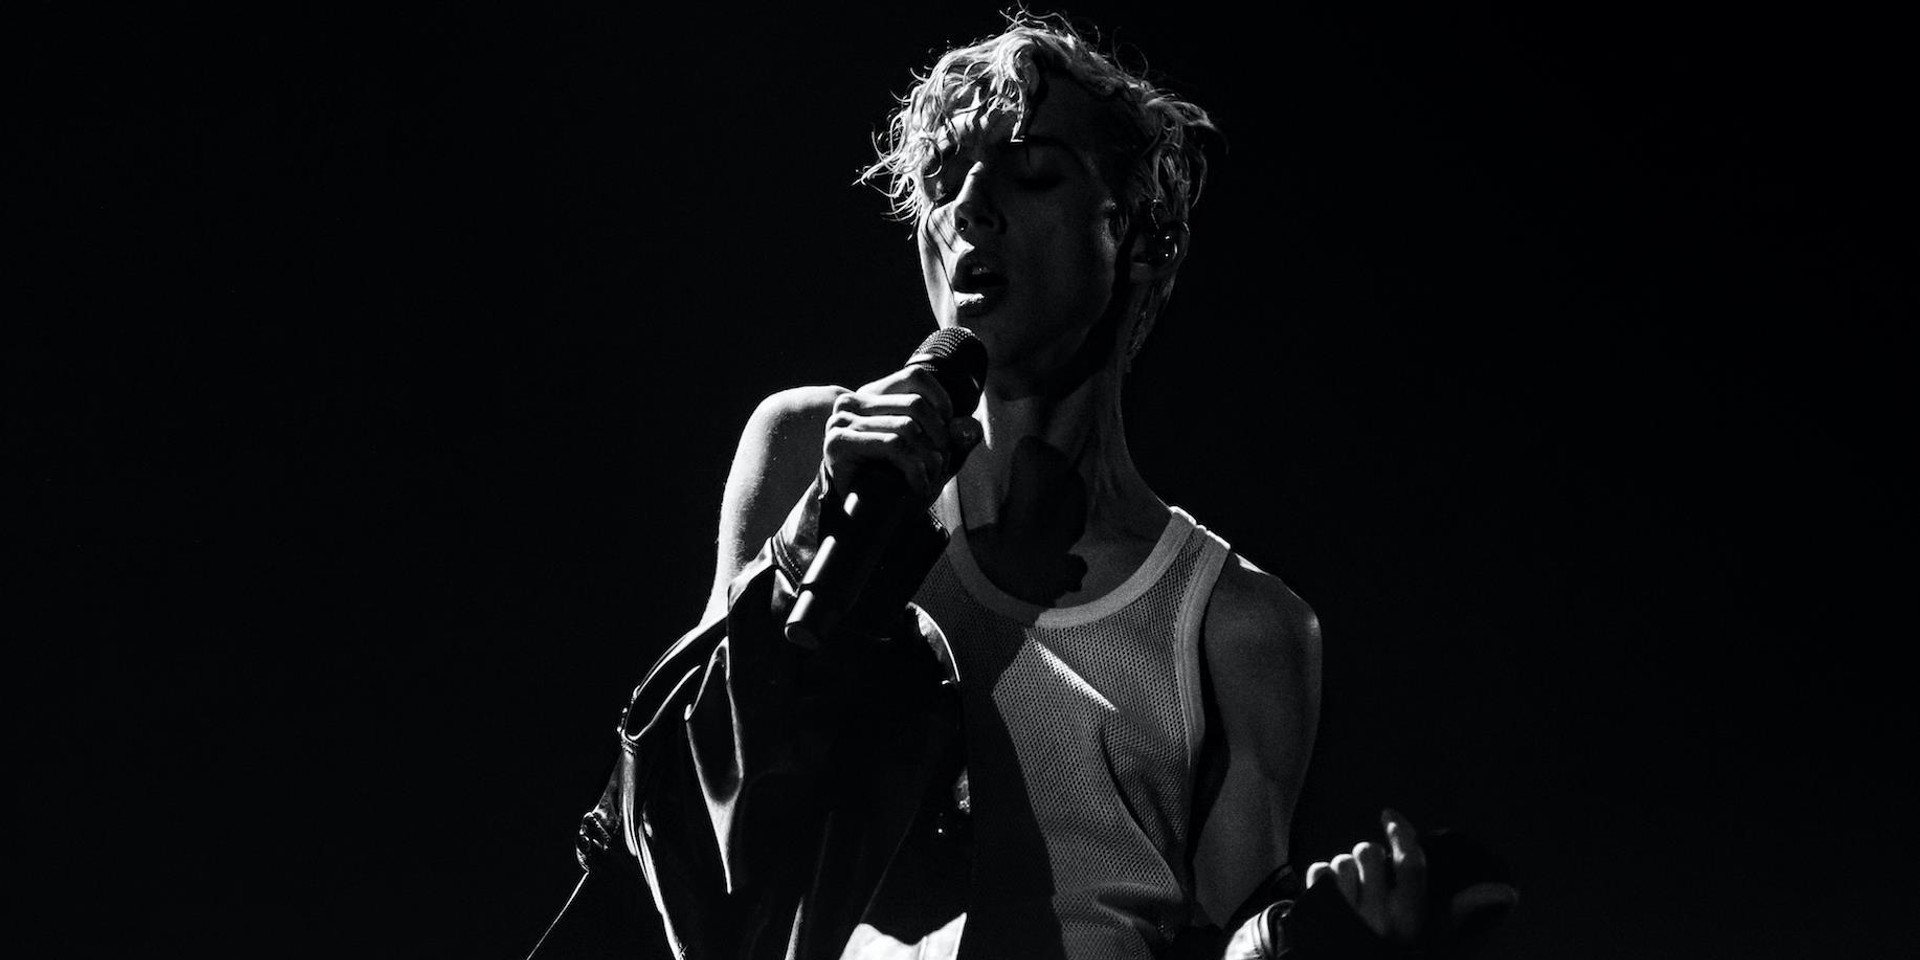 Venue and ticket details announced for Troye Sivan's first Manila concert